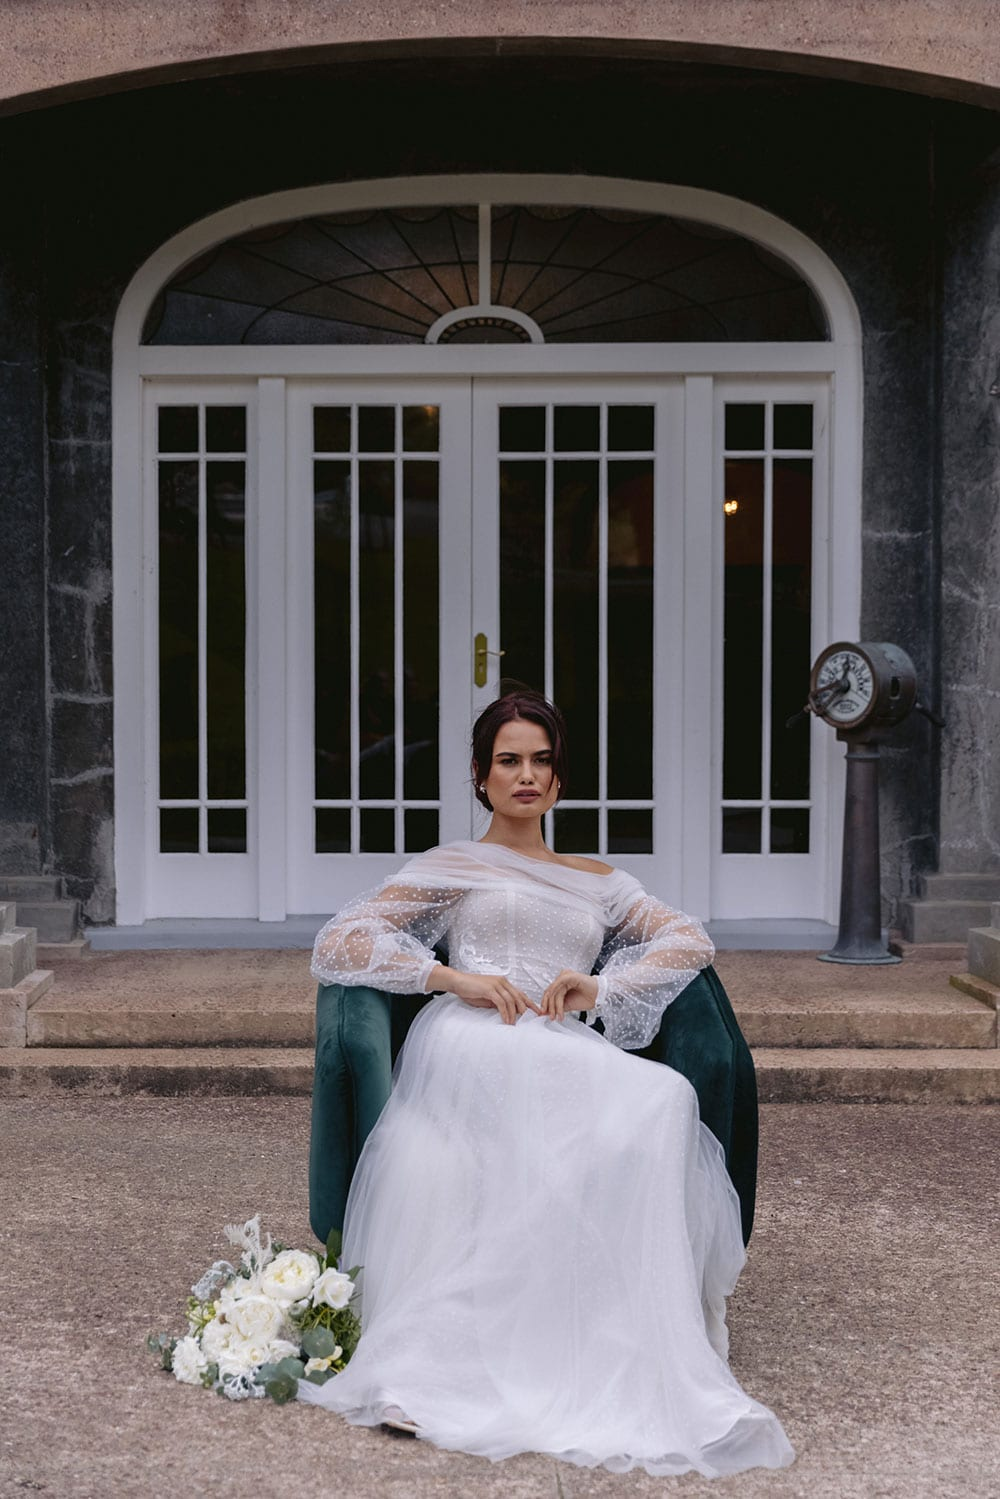 Aurora Wedding gown from Vinka Design - This dreamy wedding gown has soft hailstone tulle draped around the decolletage and over the shoulders, where it falls into a V-shaped back. Delicate puff sleeves with elegant pearl button cuffs. Structured bodice and soft skirt with train. Model wearing gown outside heritage building sitting in chair.